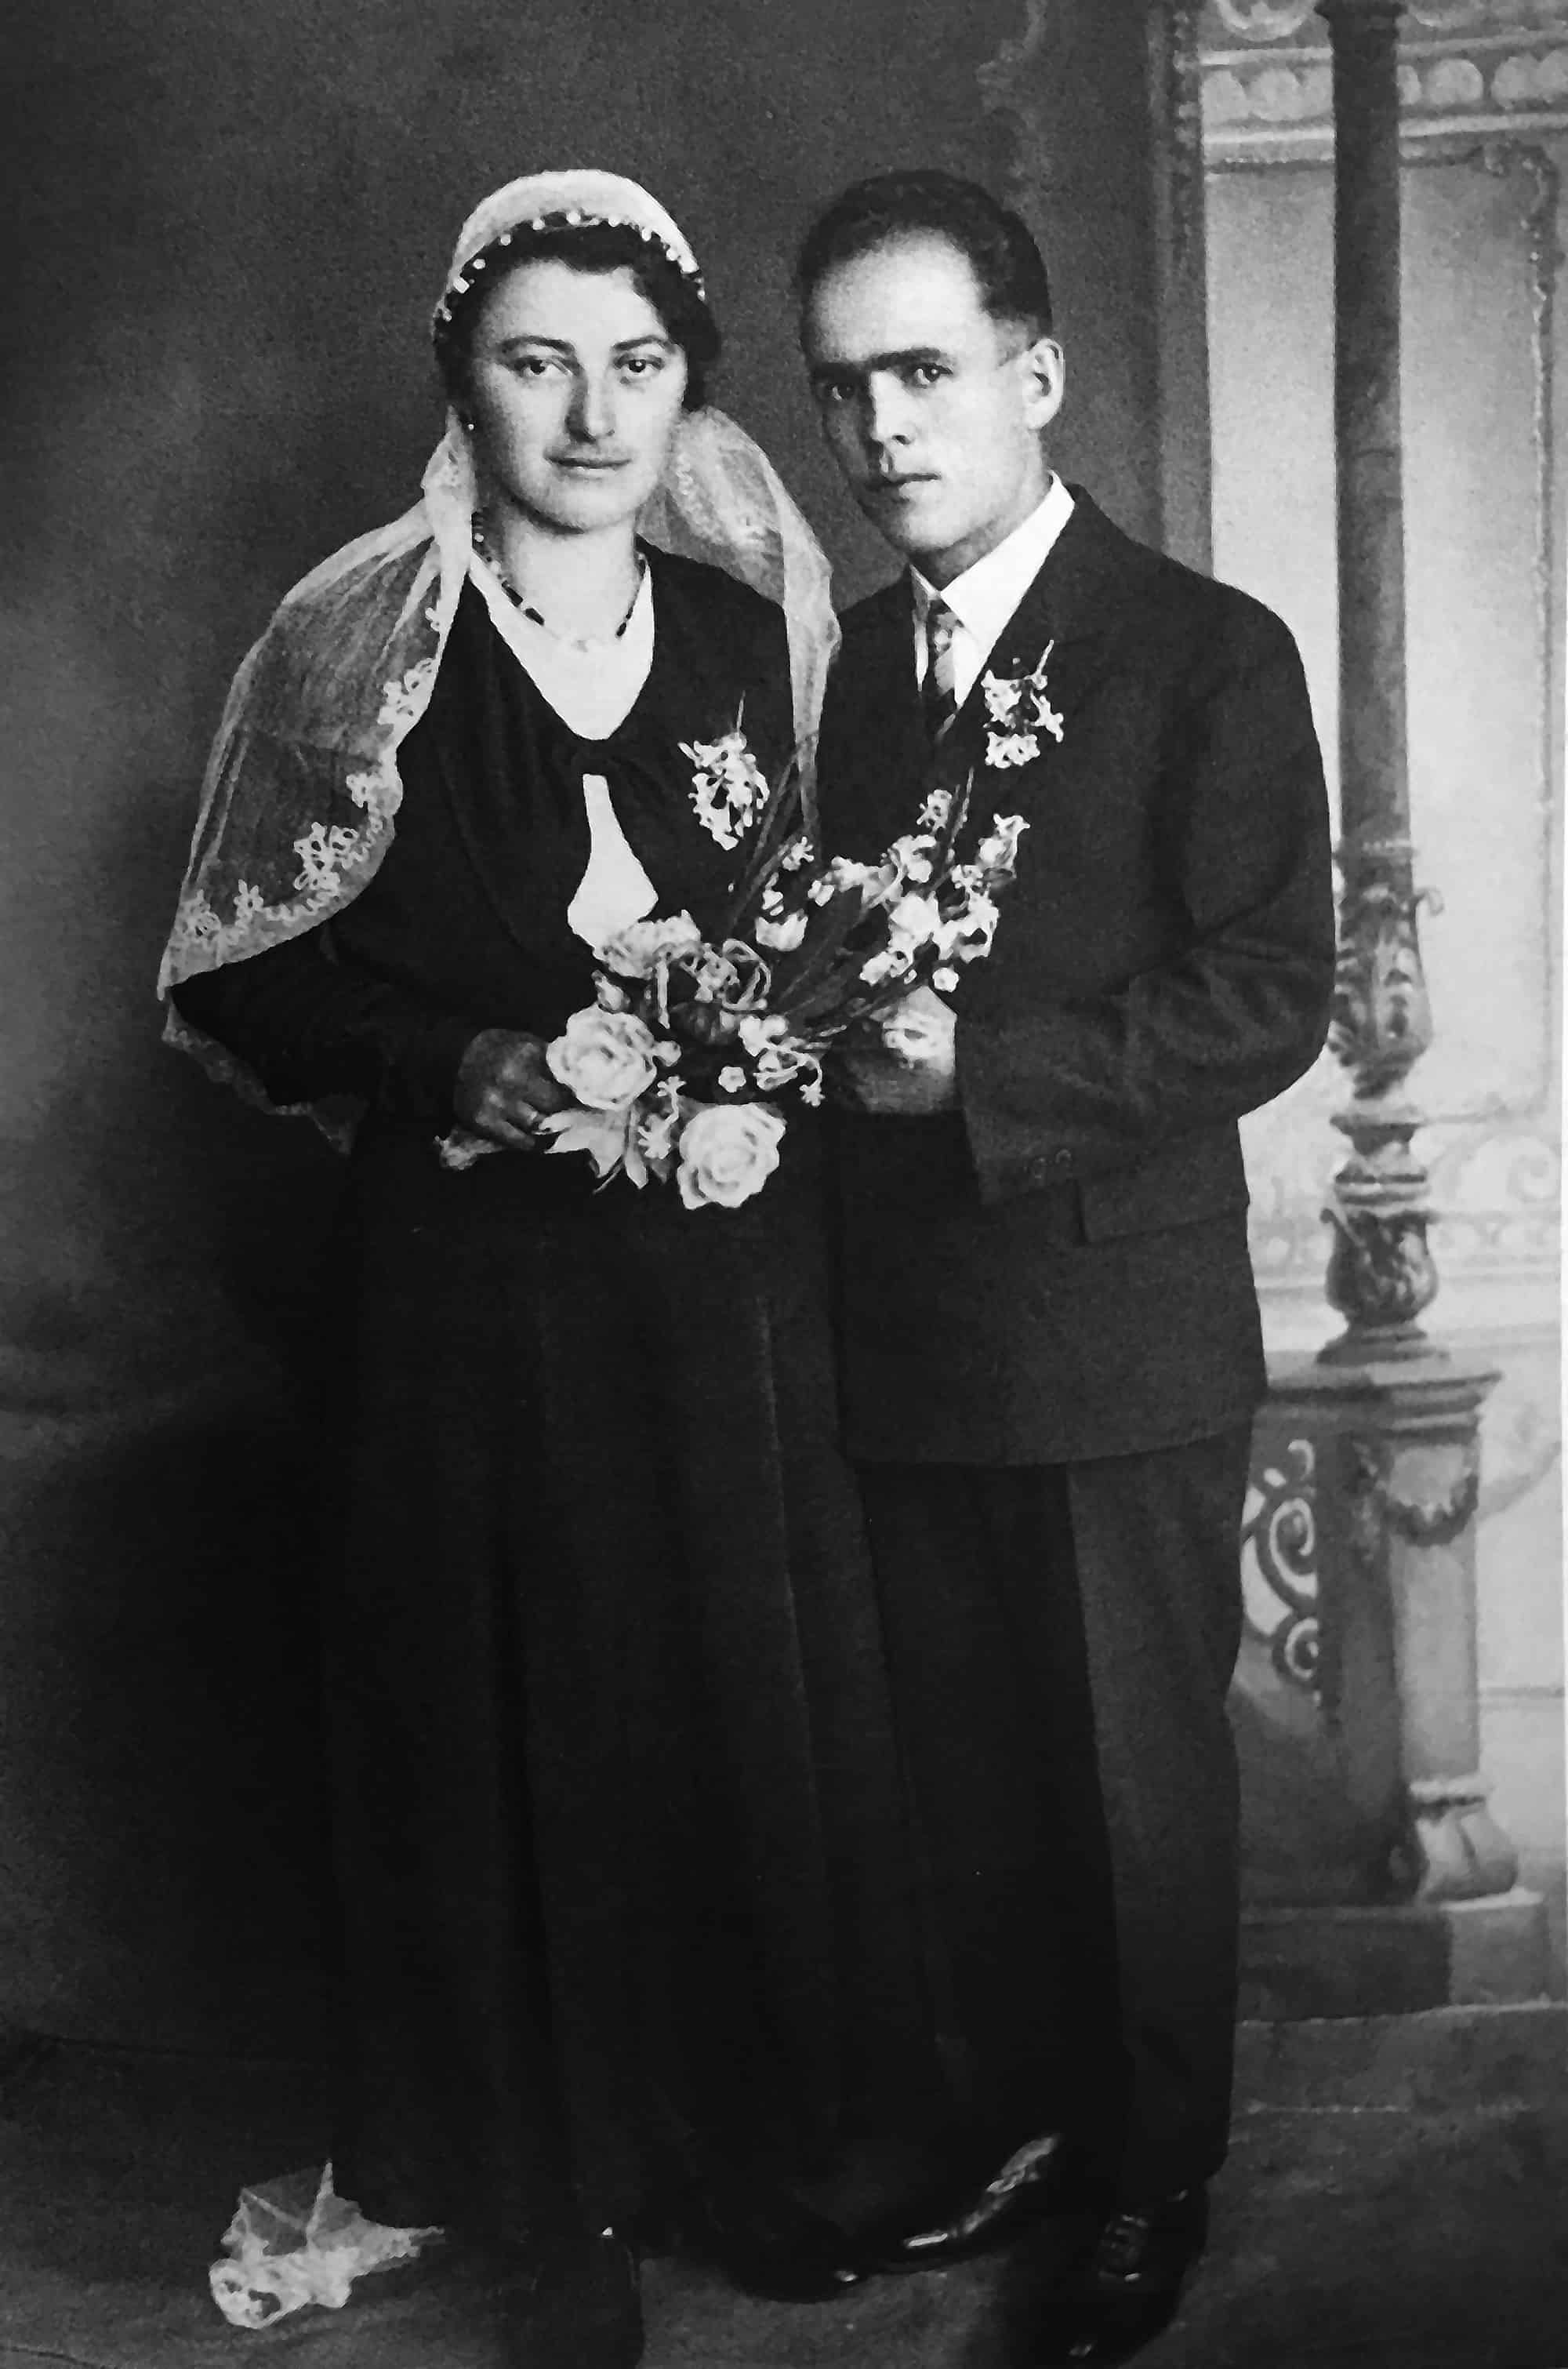 Franz and Franziska Jagerstatter after they returned from Rome, probably in April or May 1936. This is their wedding photograph./Styria Verlag. Used with permission.